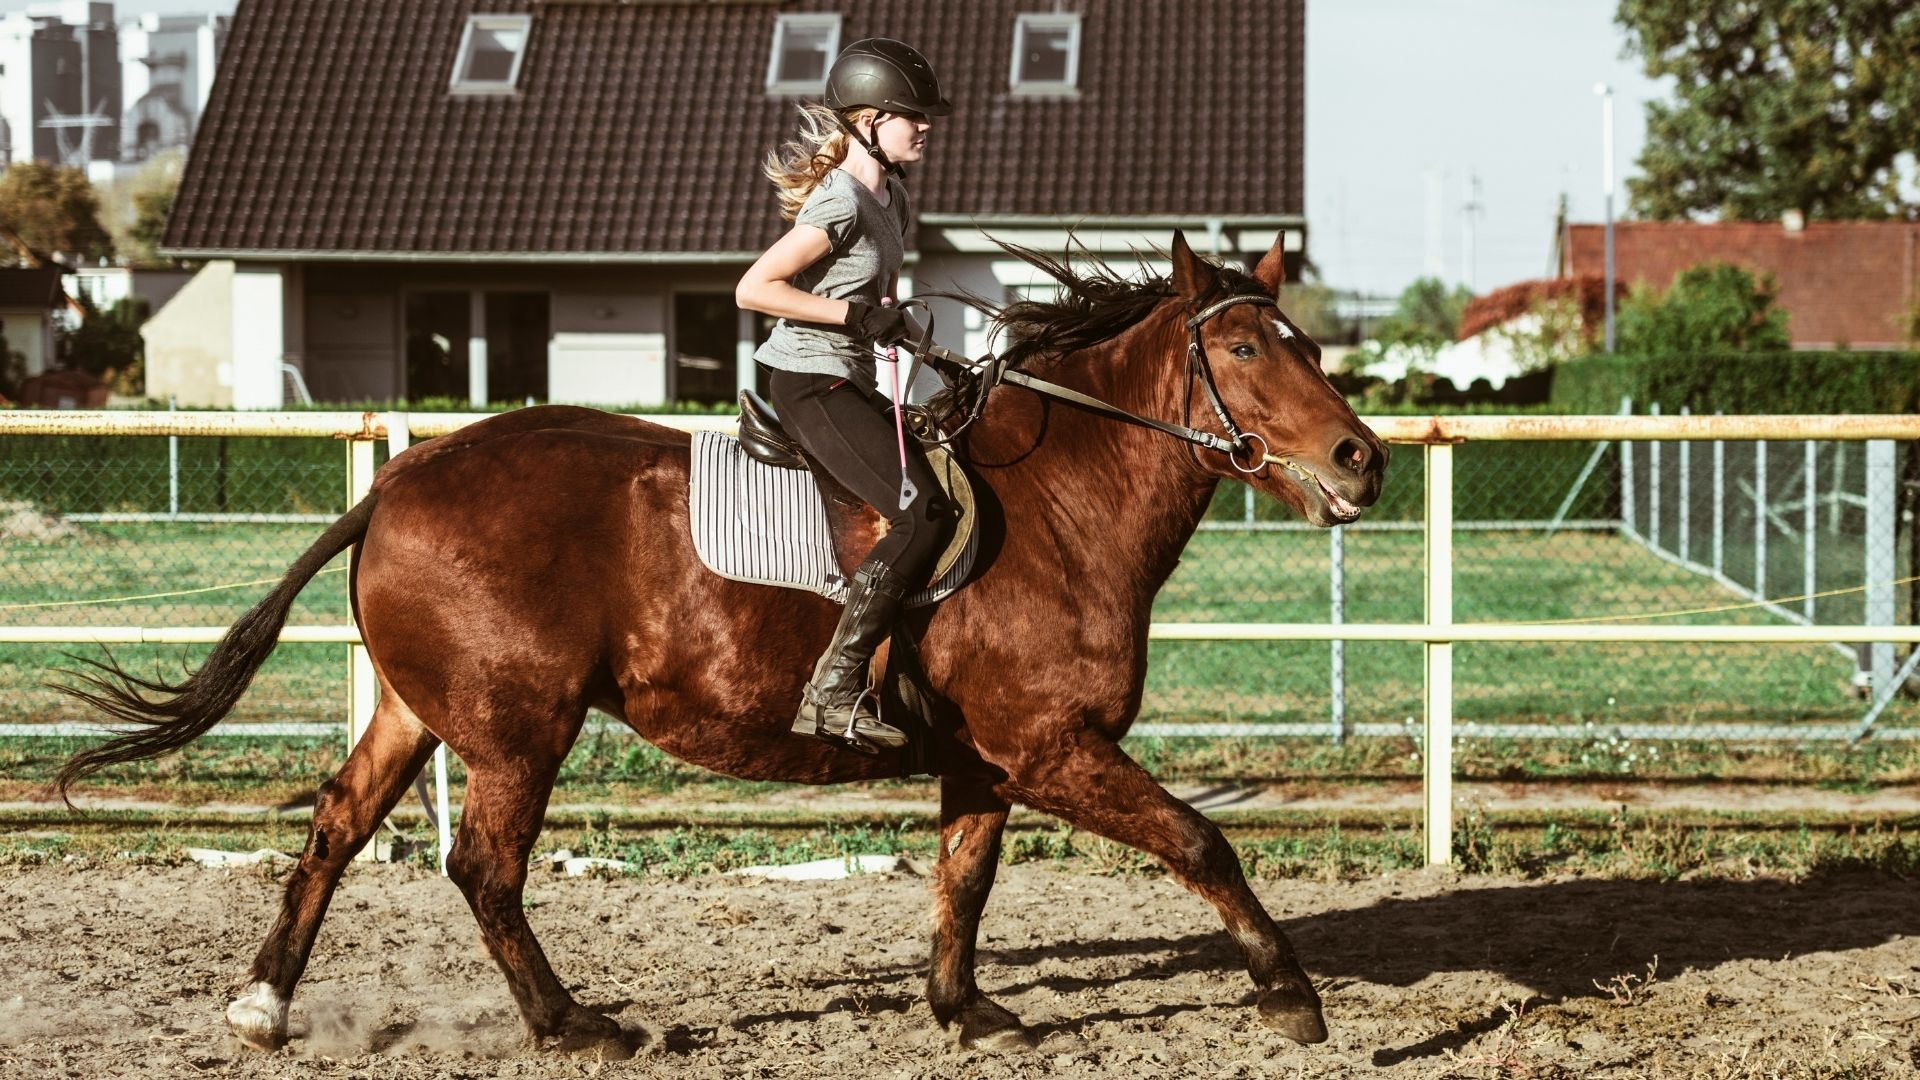 picture of a girl riding a horse,